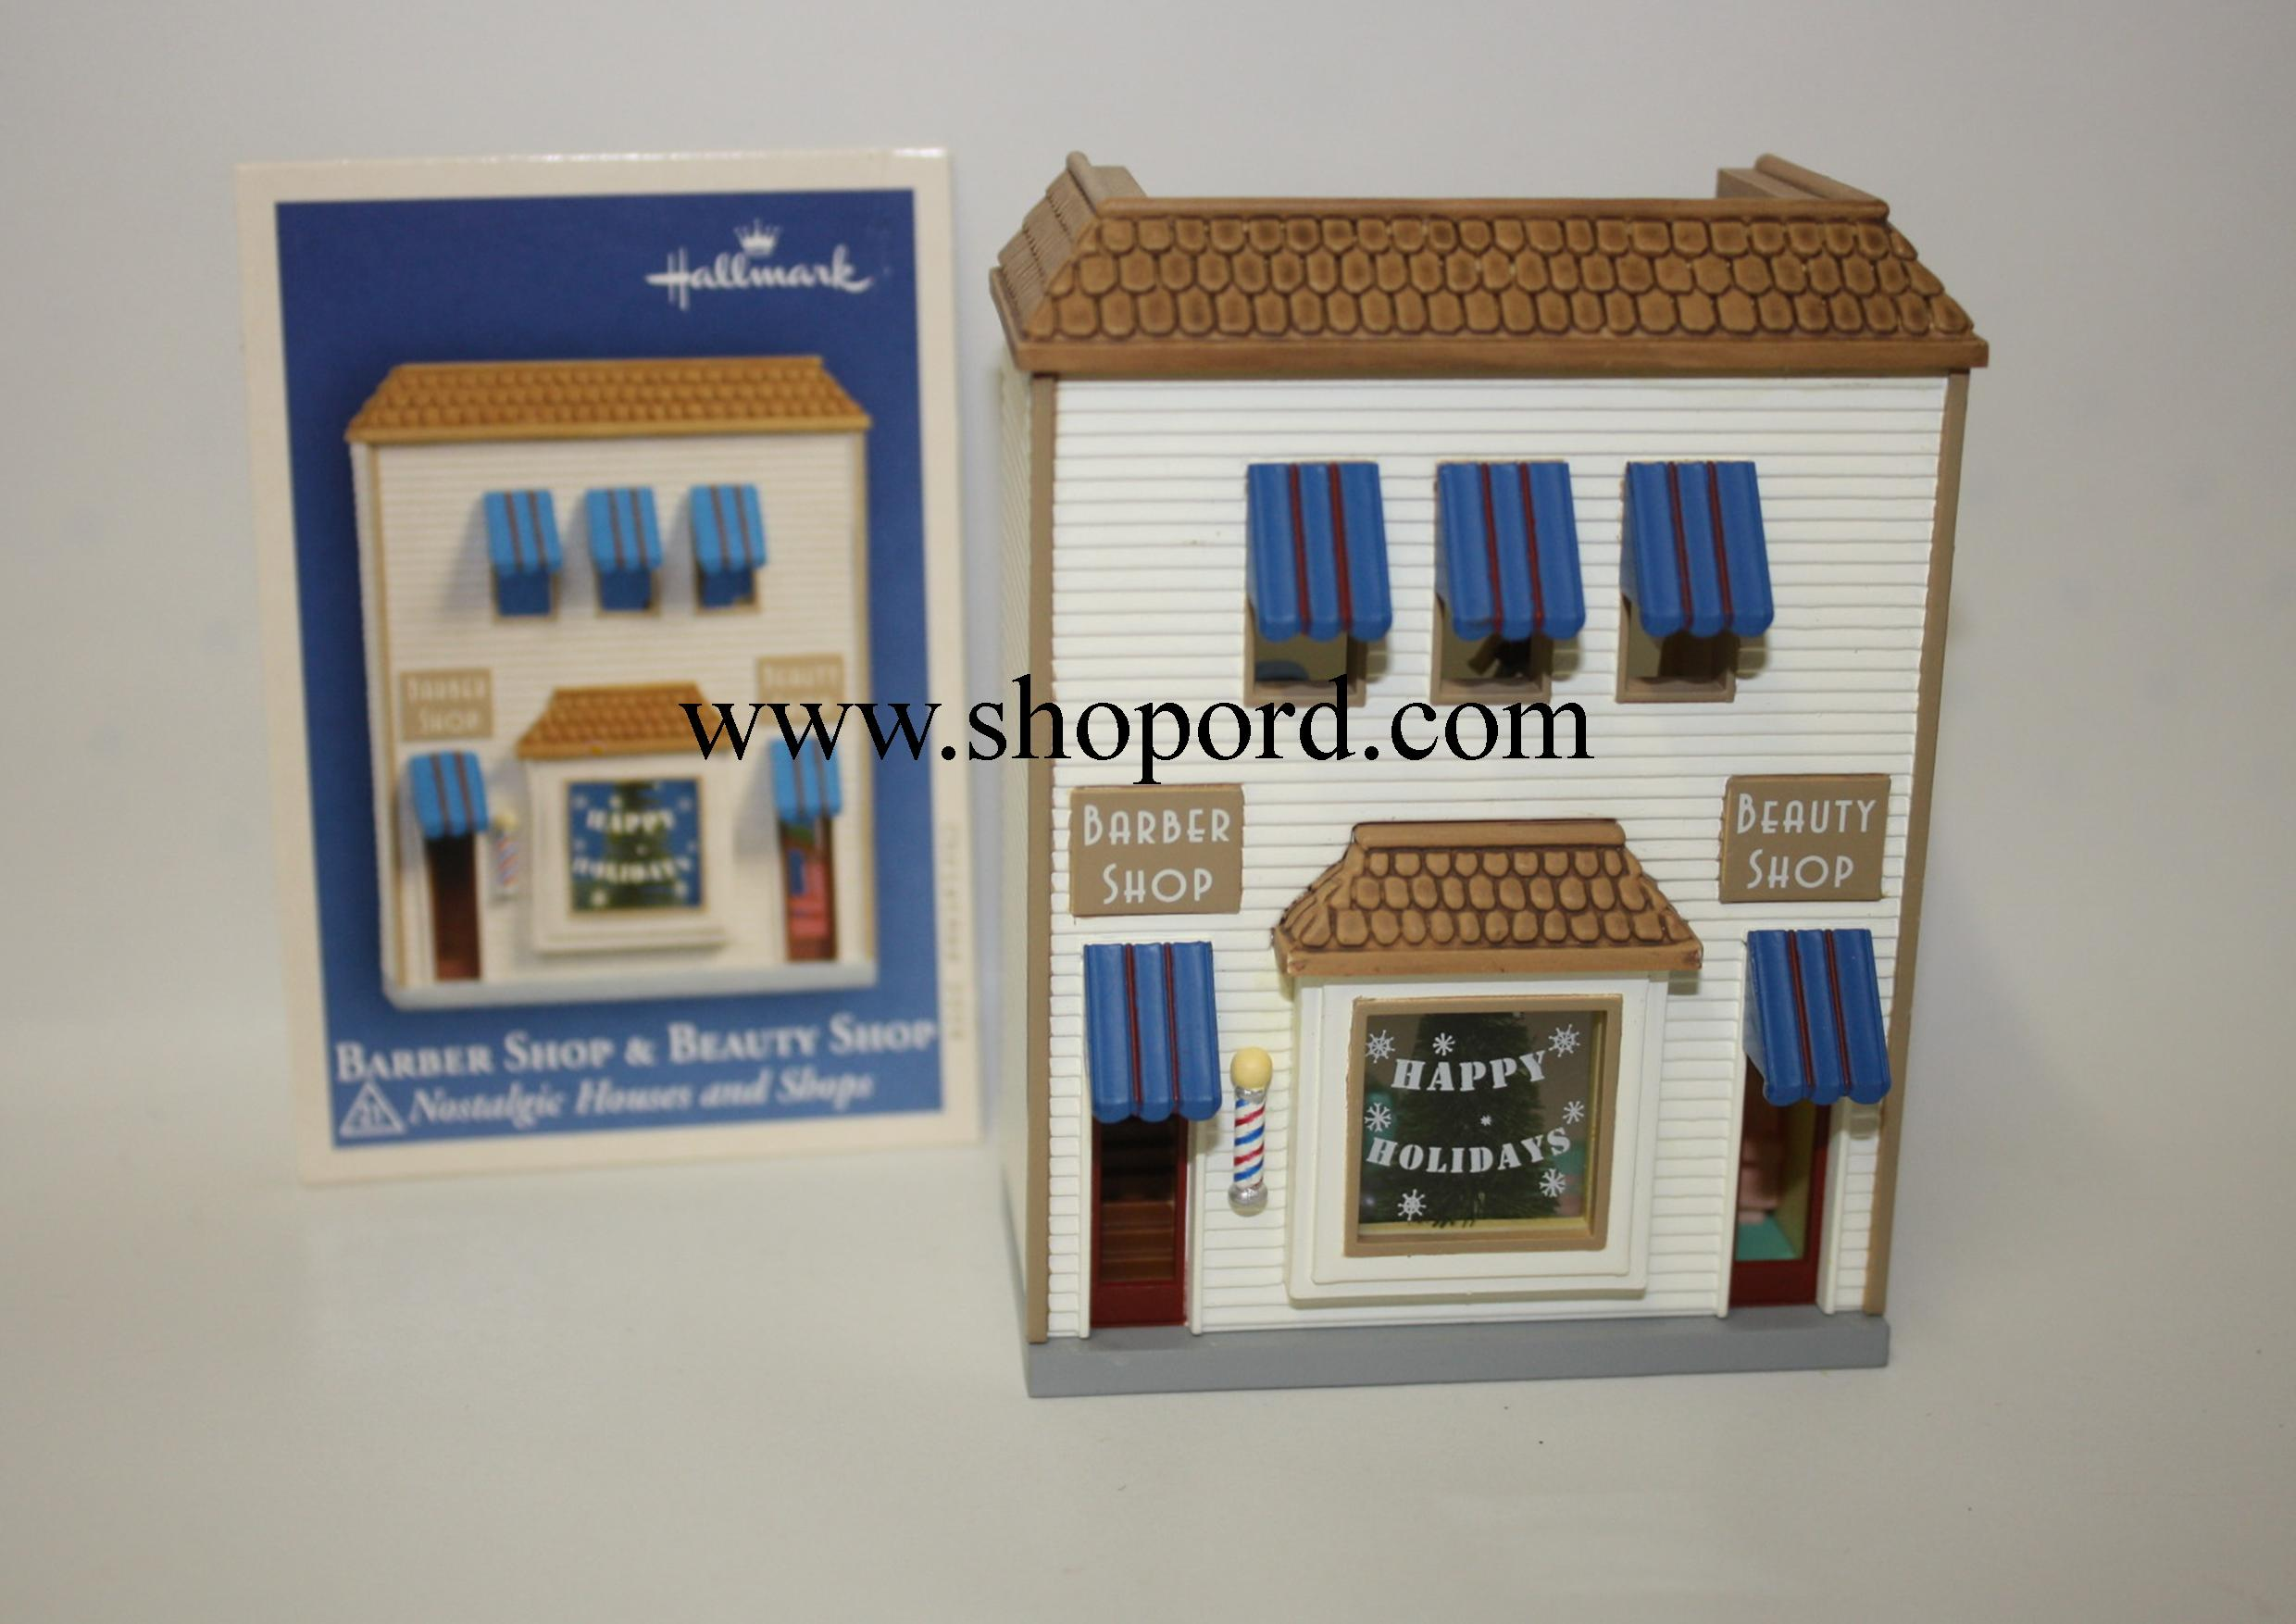 Hallmark 2004 Barber Shop and Beauty Shop Ornament 21st in the Nostalgic Houses and Shops Series QX8181